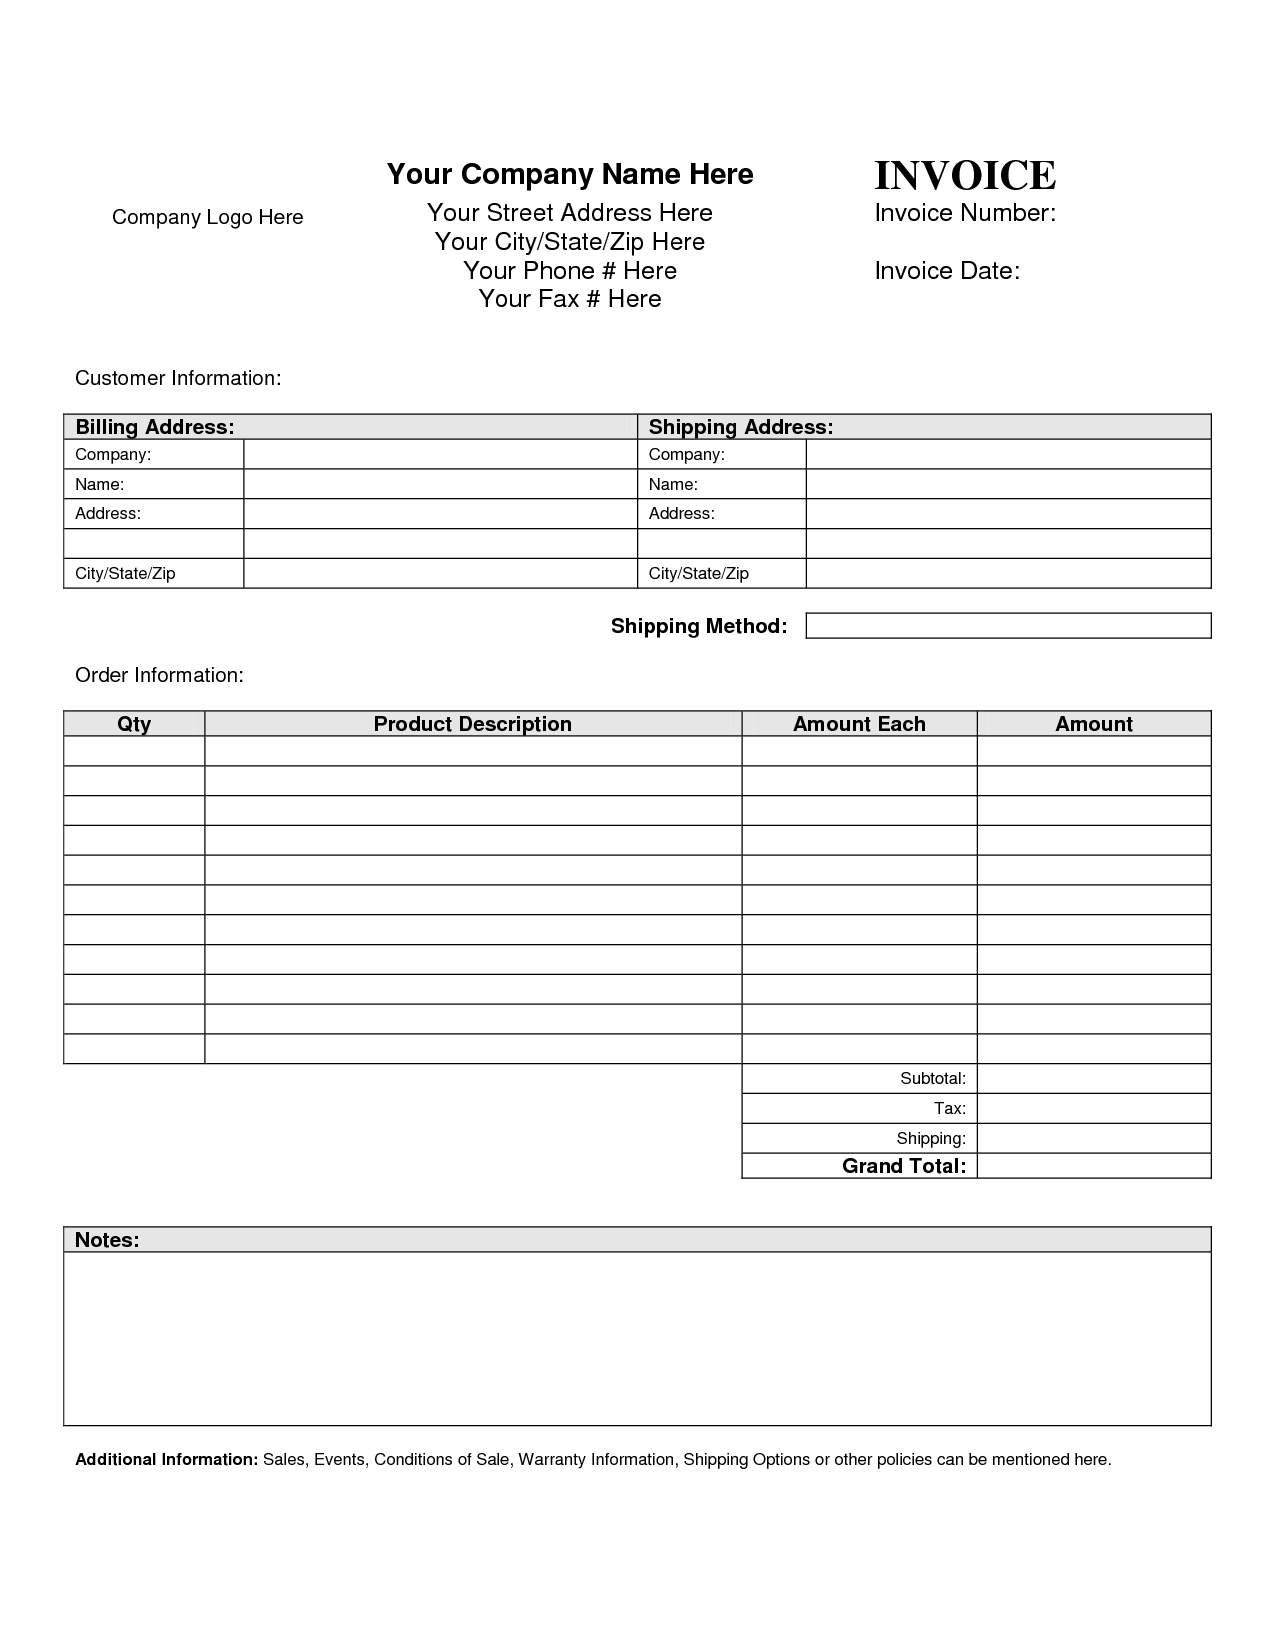 blank invoice template blankinvoice format for an invoice